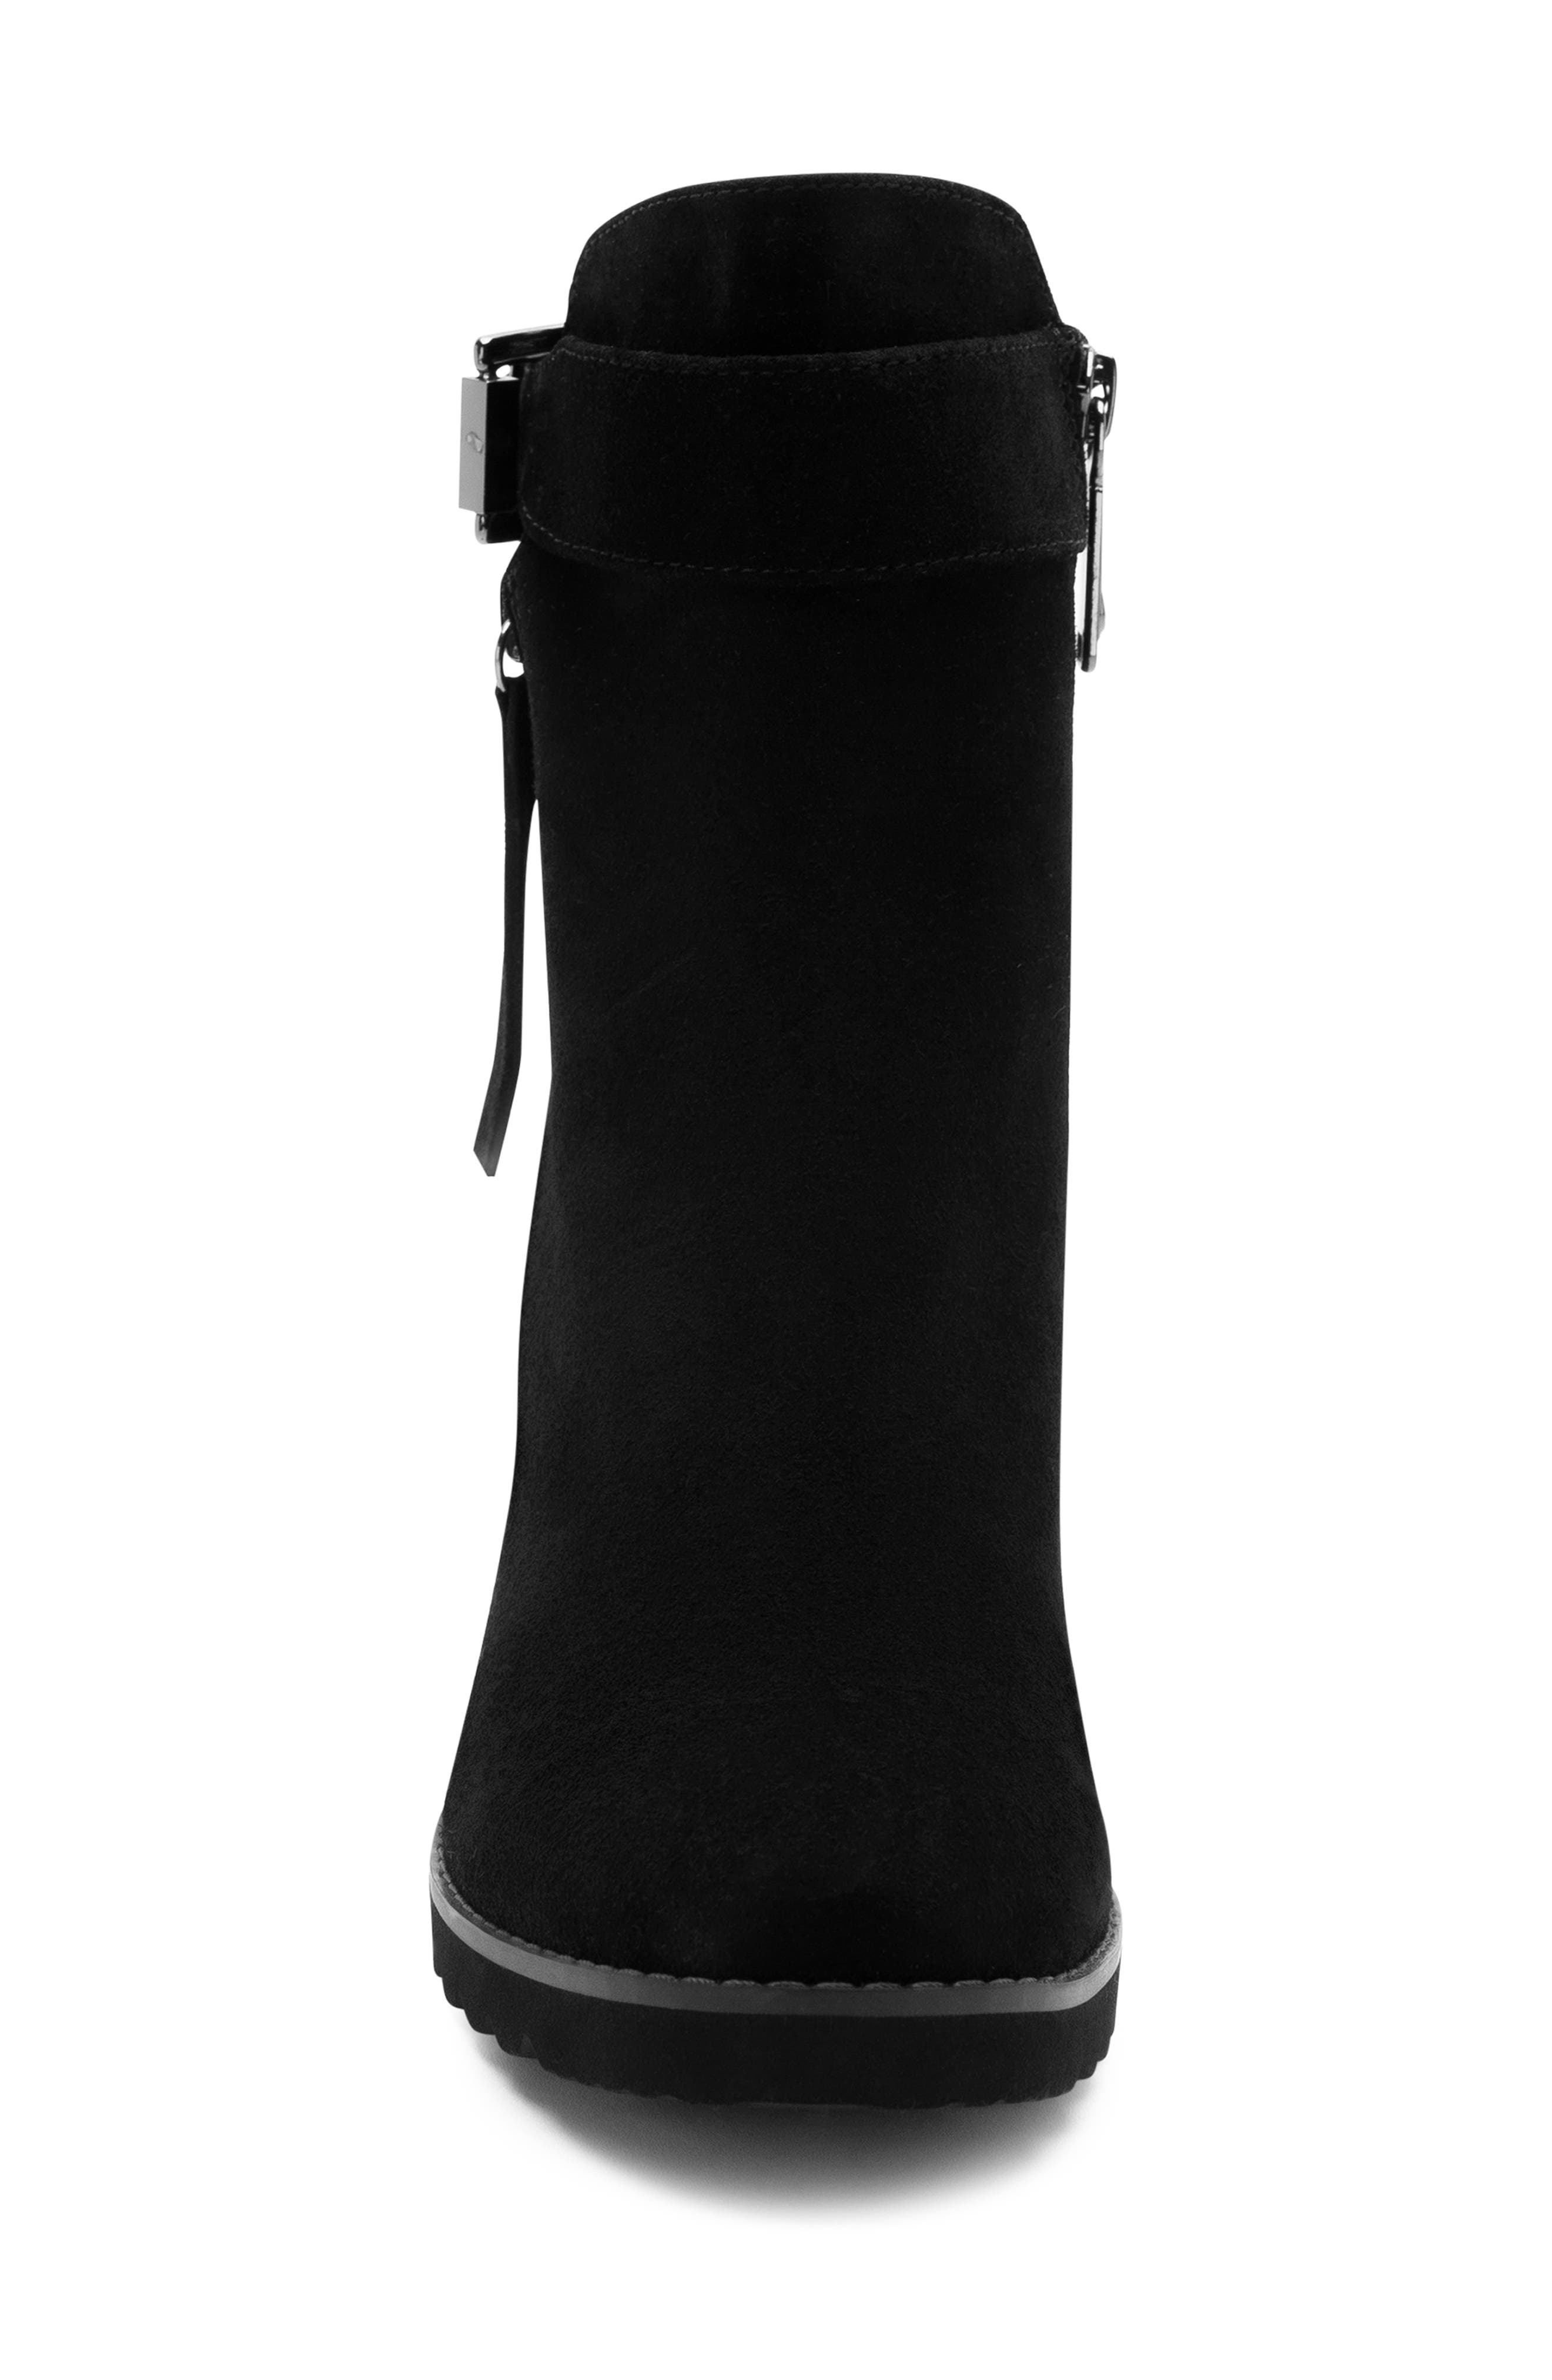 Anic Waterproof Ankle Boot,                             Alternate thumbnail 4, color,                             BLACK SUEDE